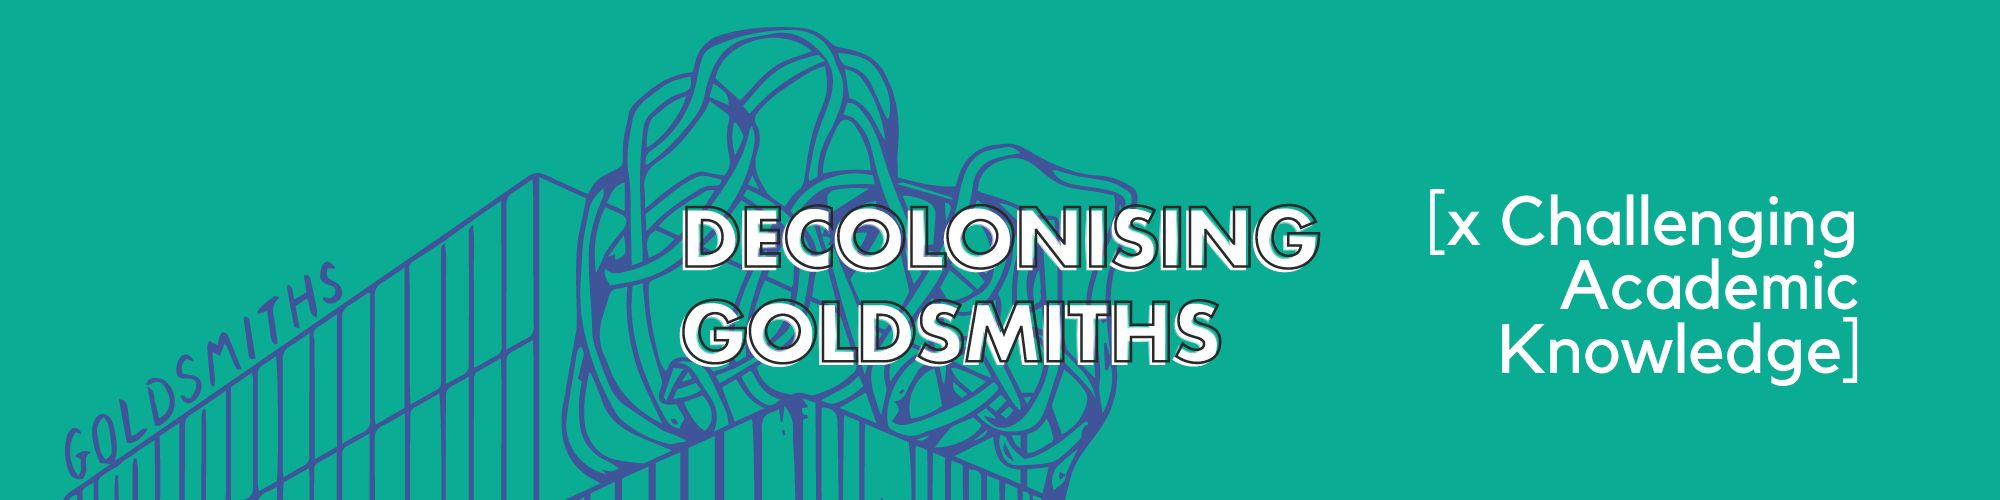 Decolonising Goldsmiths x Challenging Academic Knowledge